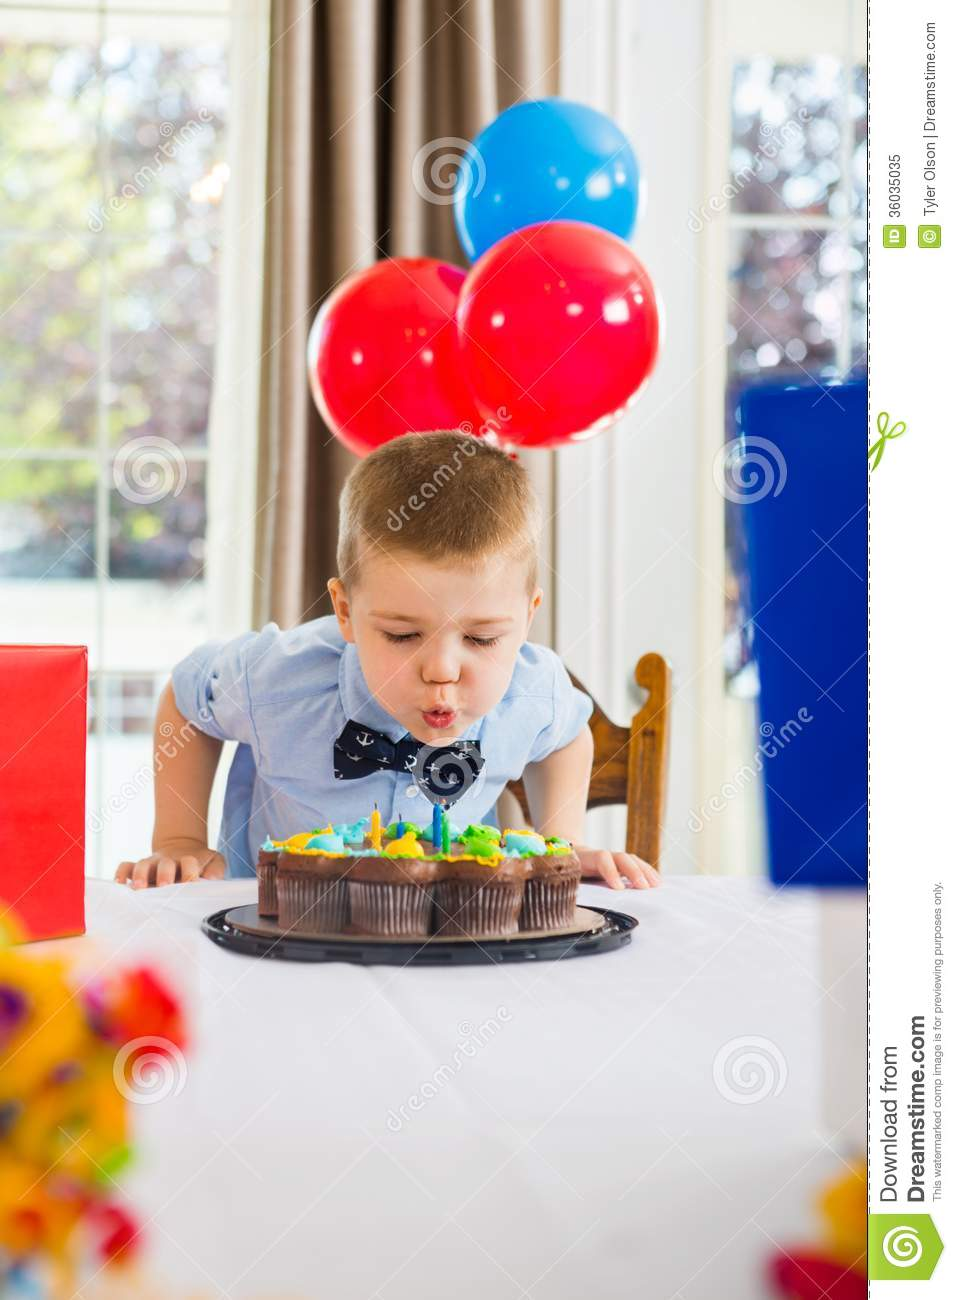 Child Blowing Out Birthday Cake Candles Party